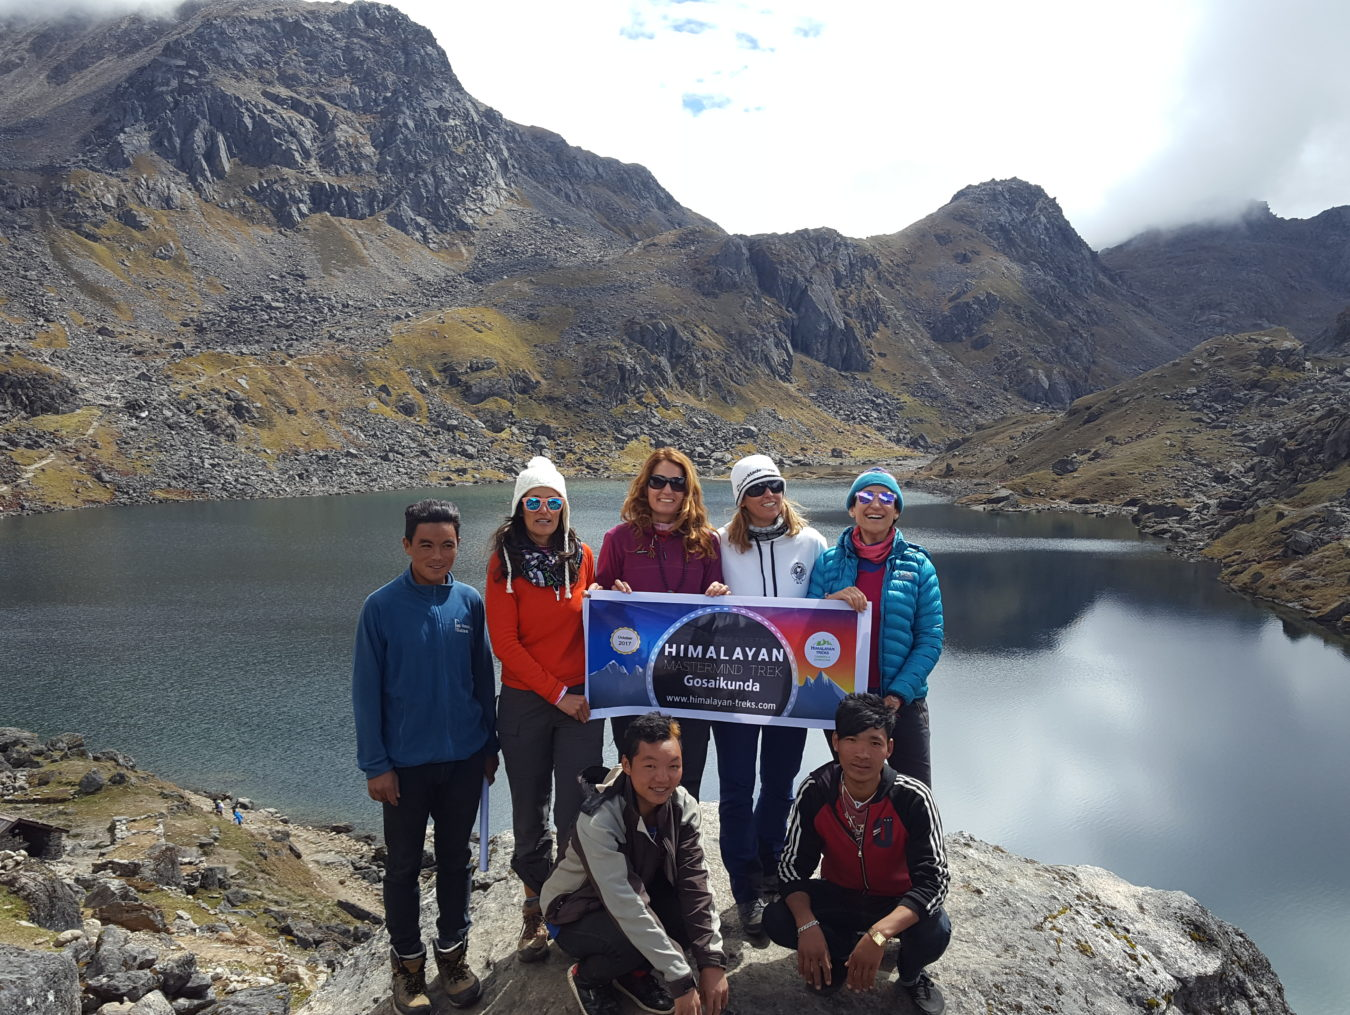 7 himalayan trekkers held an event in himalayas mountain